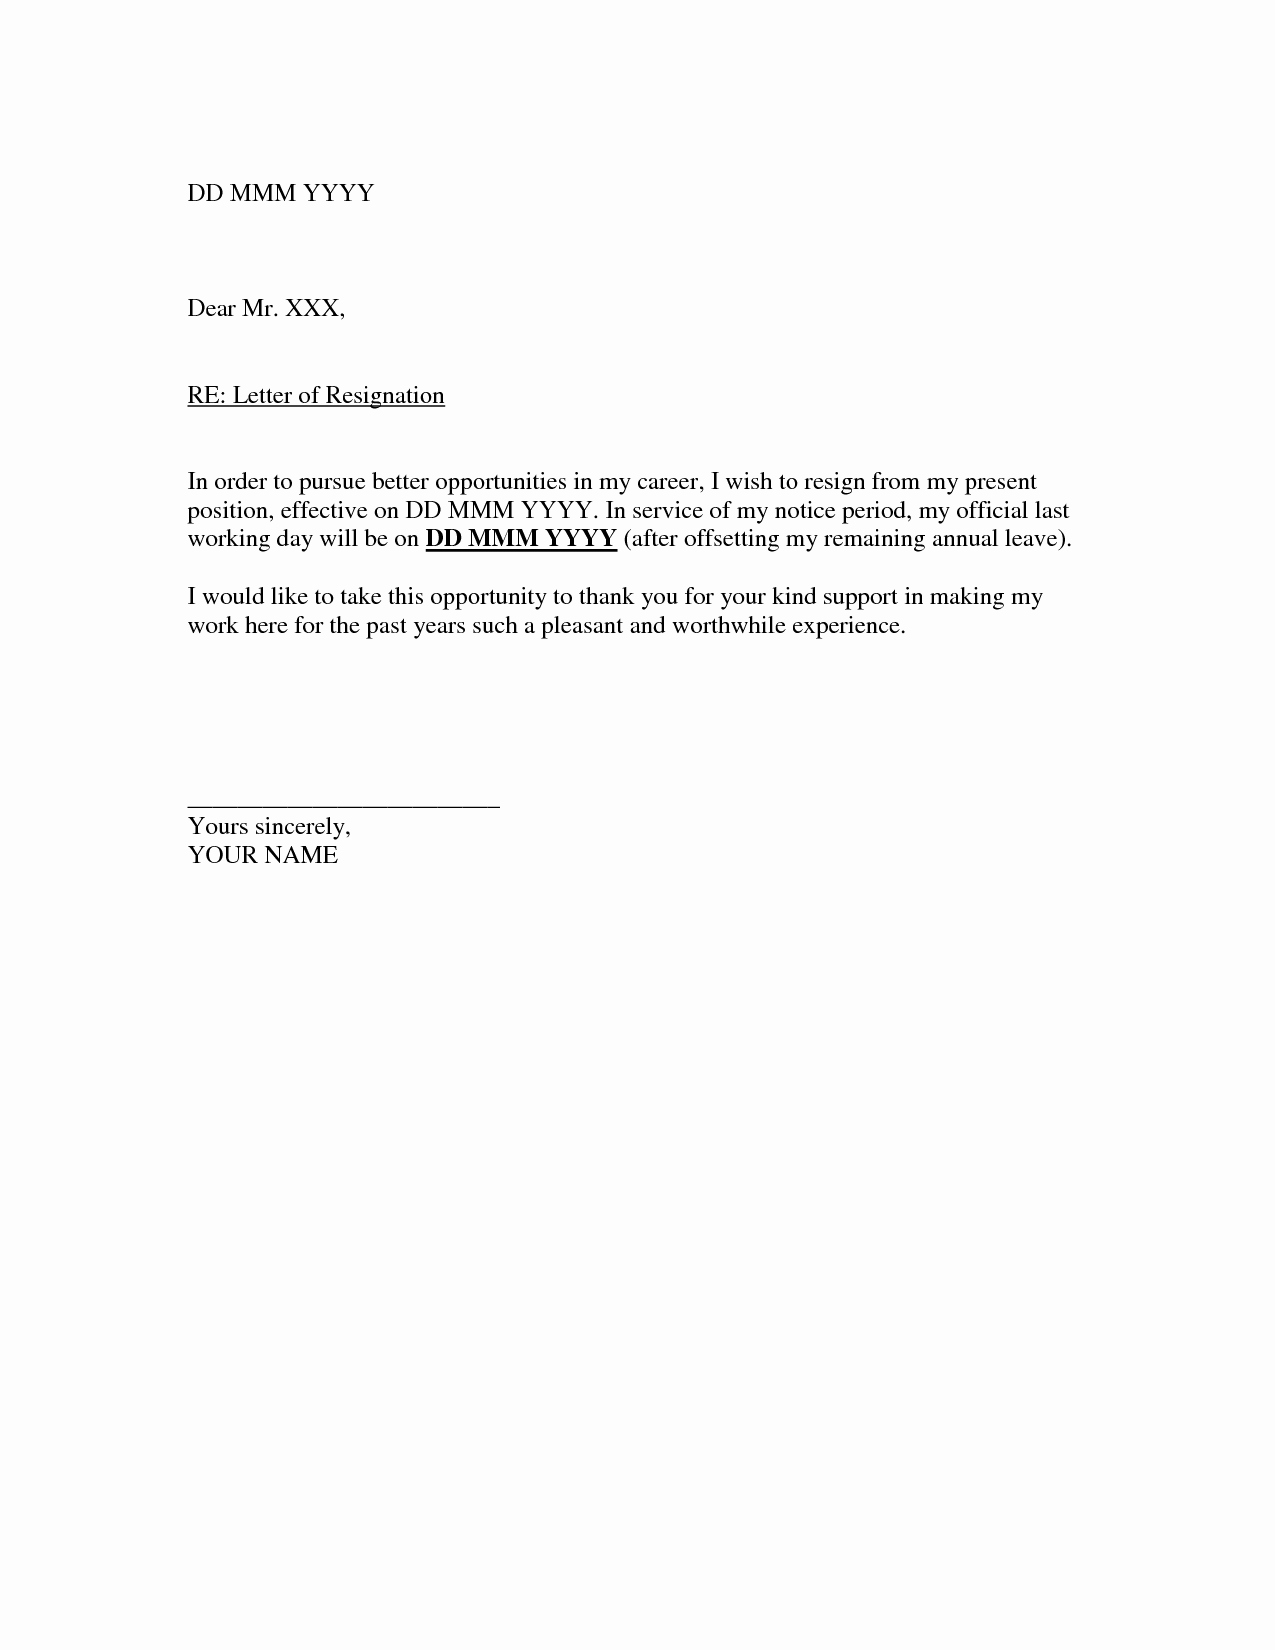 Formal Letters Of Resignation Beautiful Related to Resignation Letter Template Letters Of